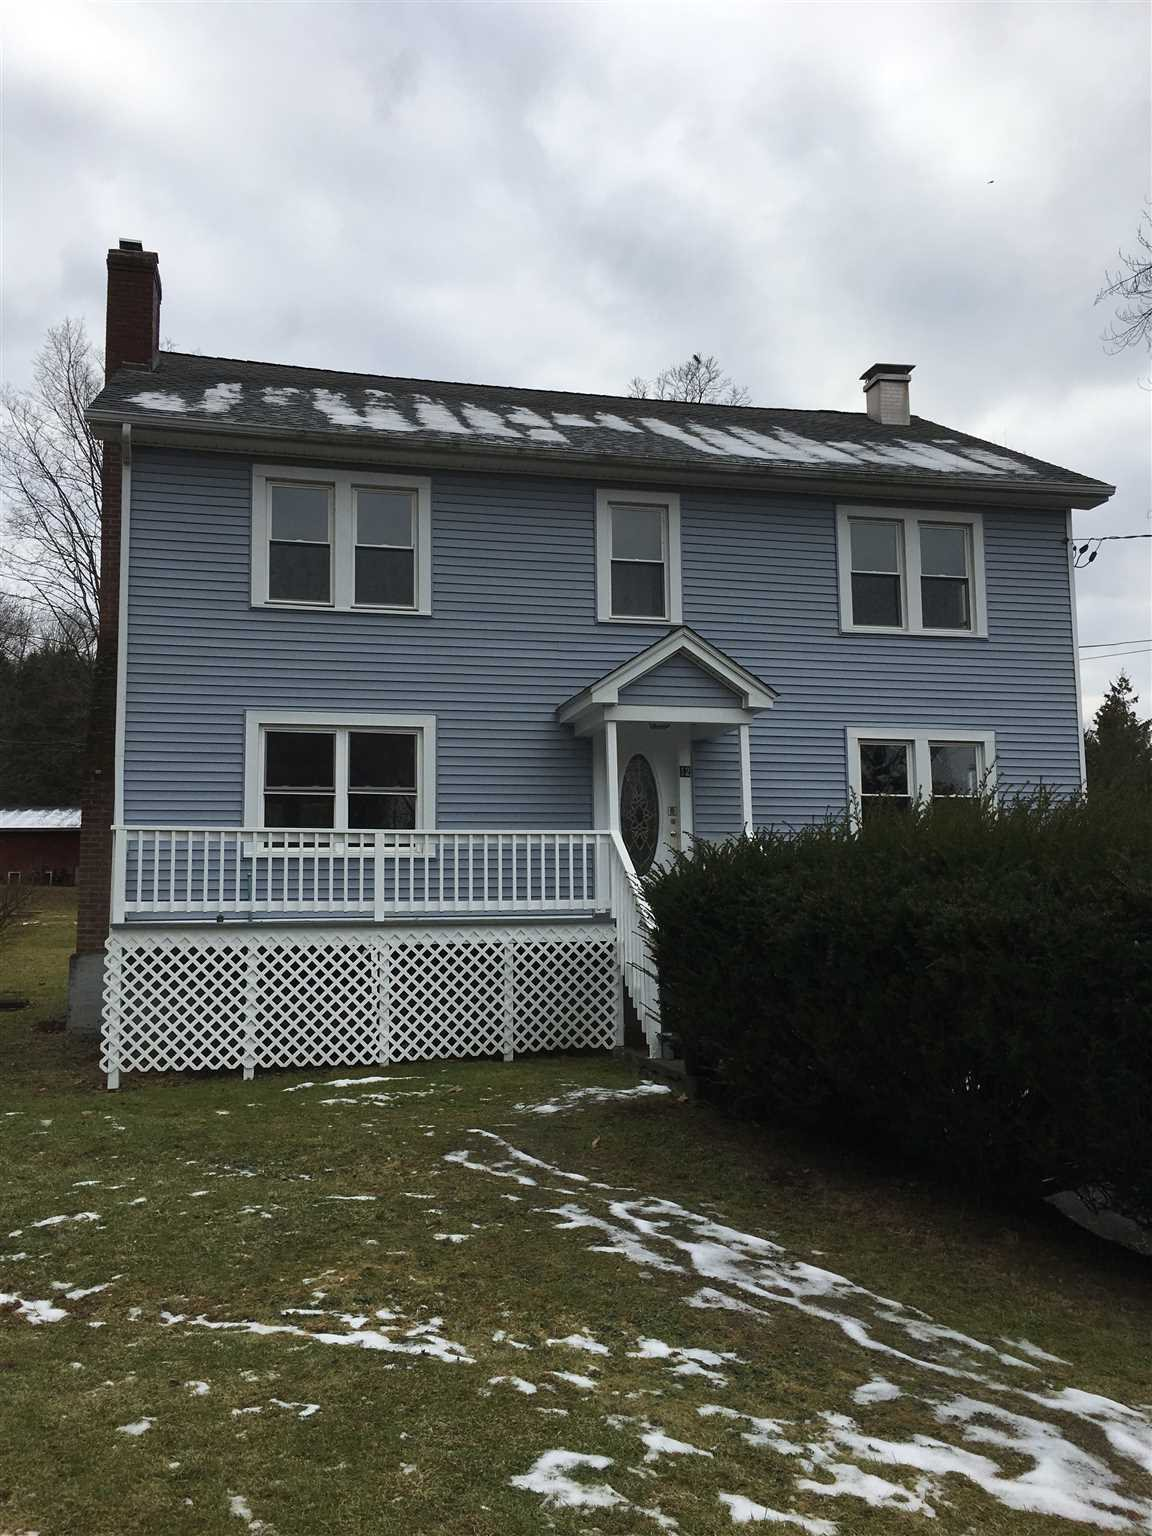 Single Family Home for Rent at 12 WATERBURY HILL Road 12 WATERBURY HILL Road La Grange, New York 12540 United States